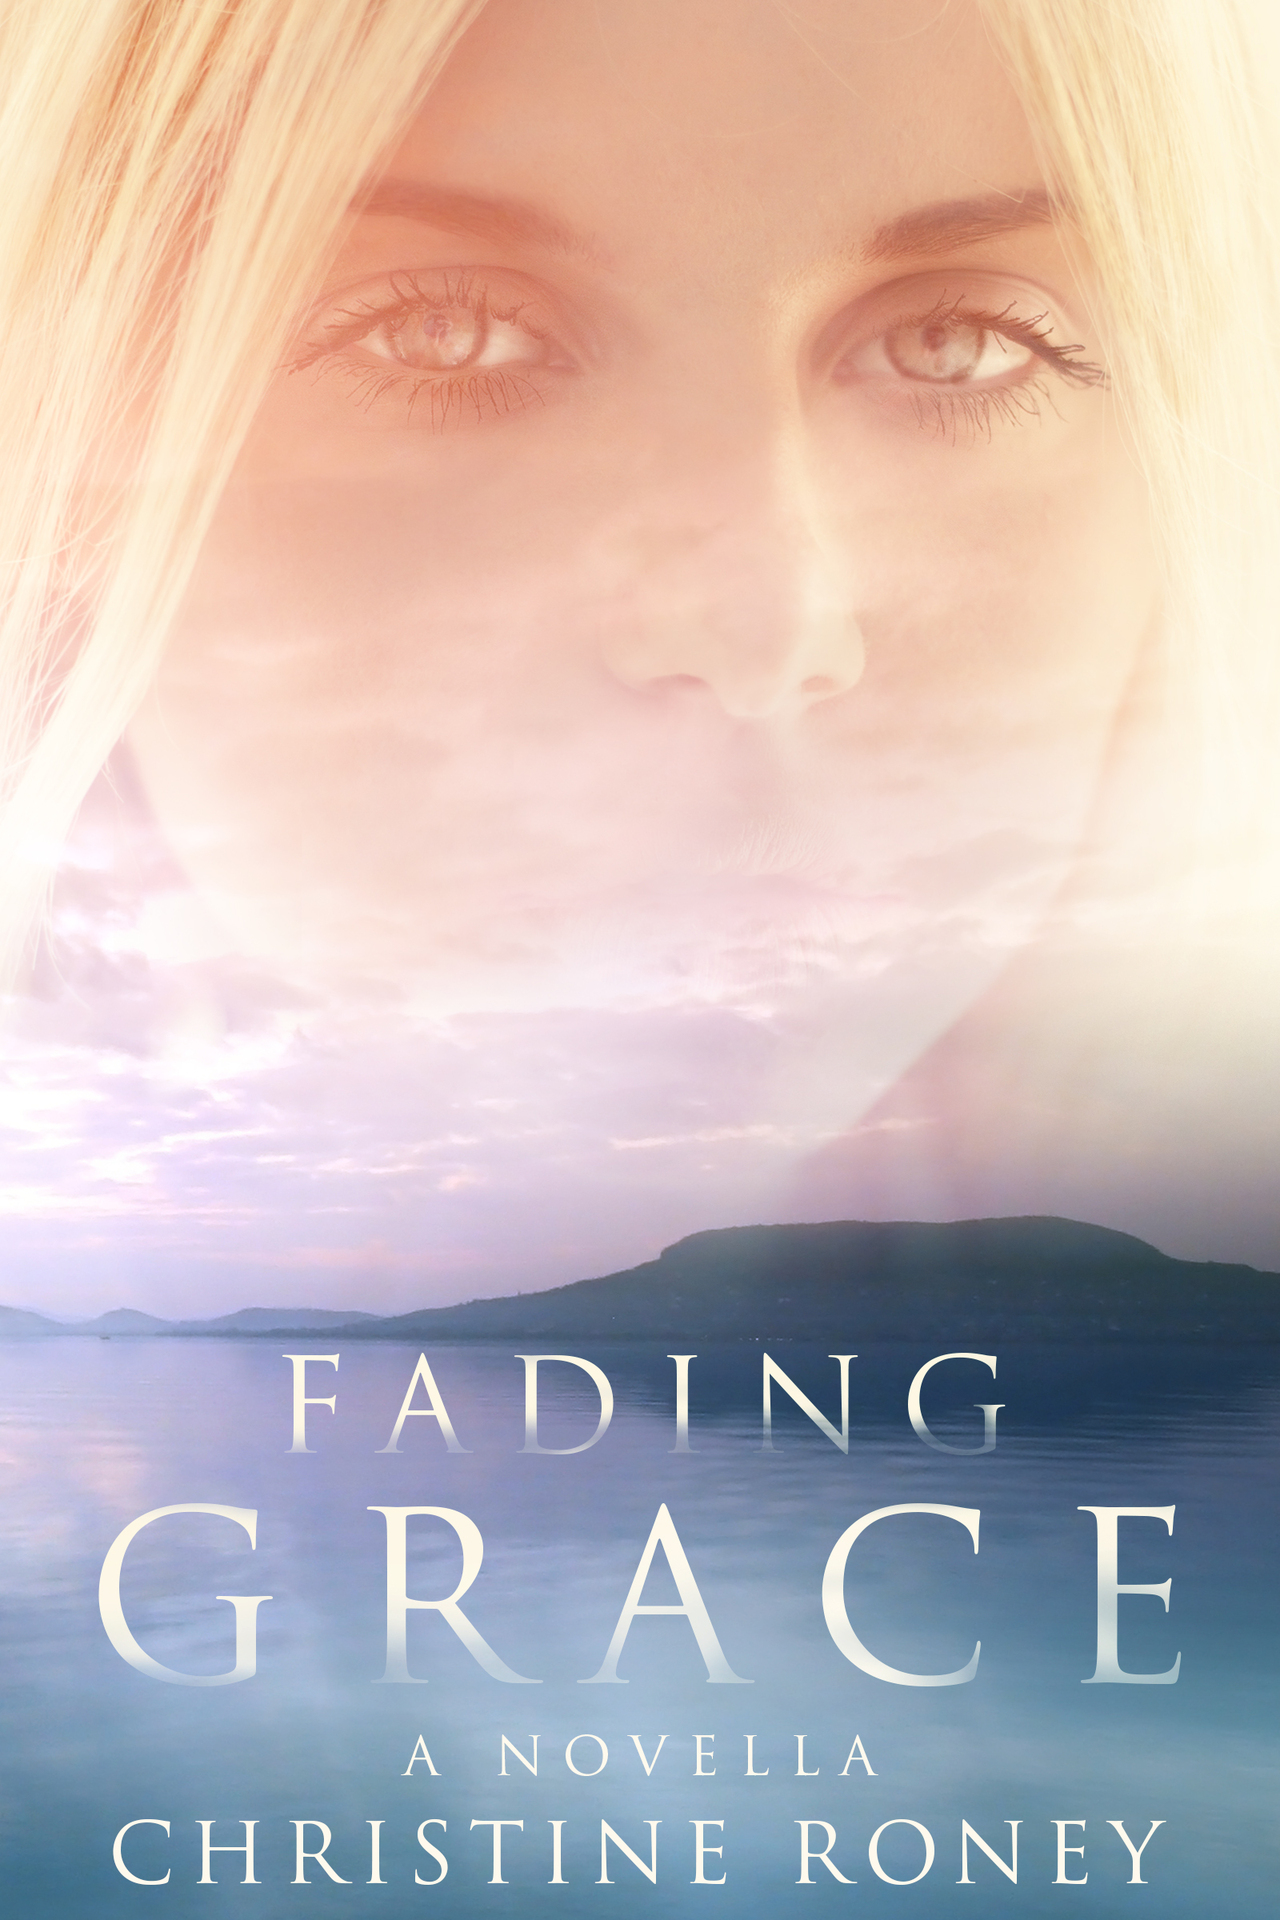 Fading grace ebook cover complete